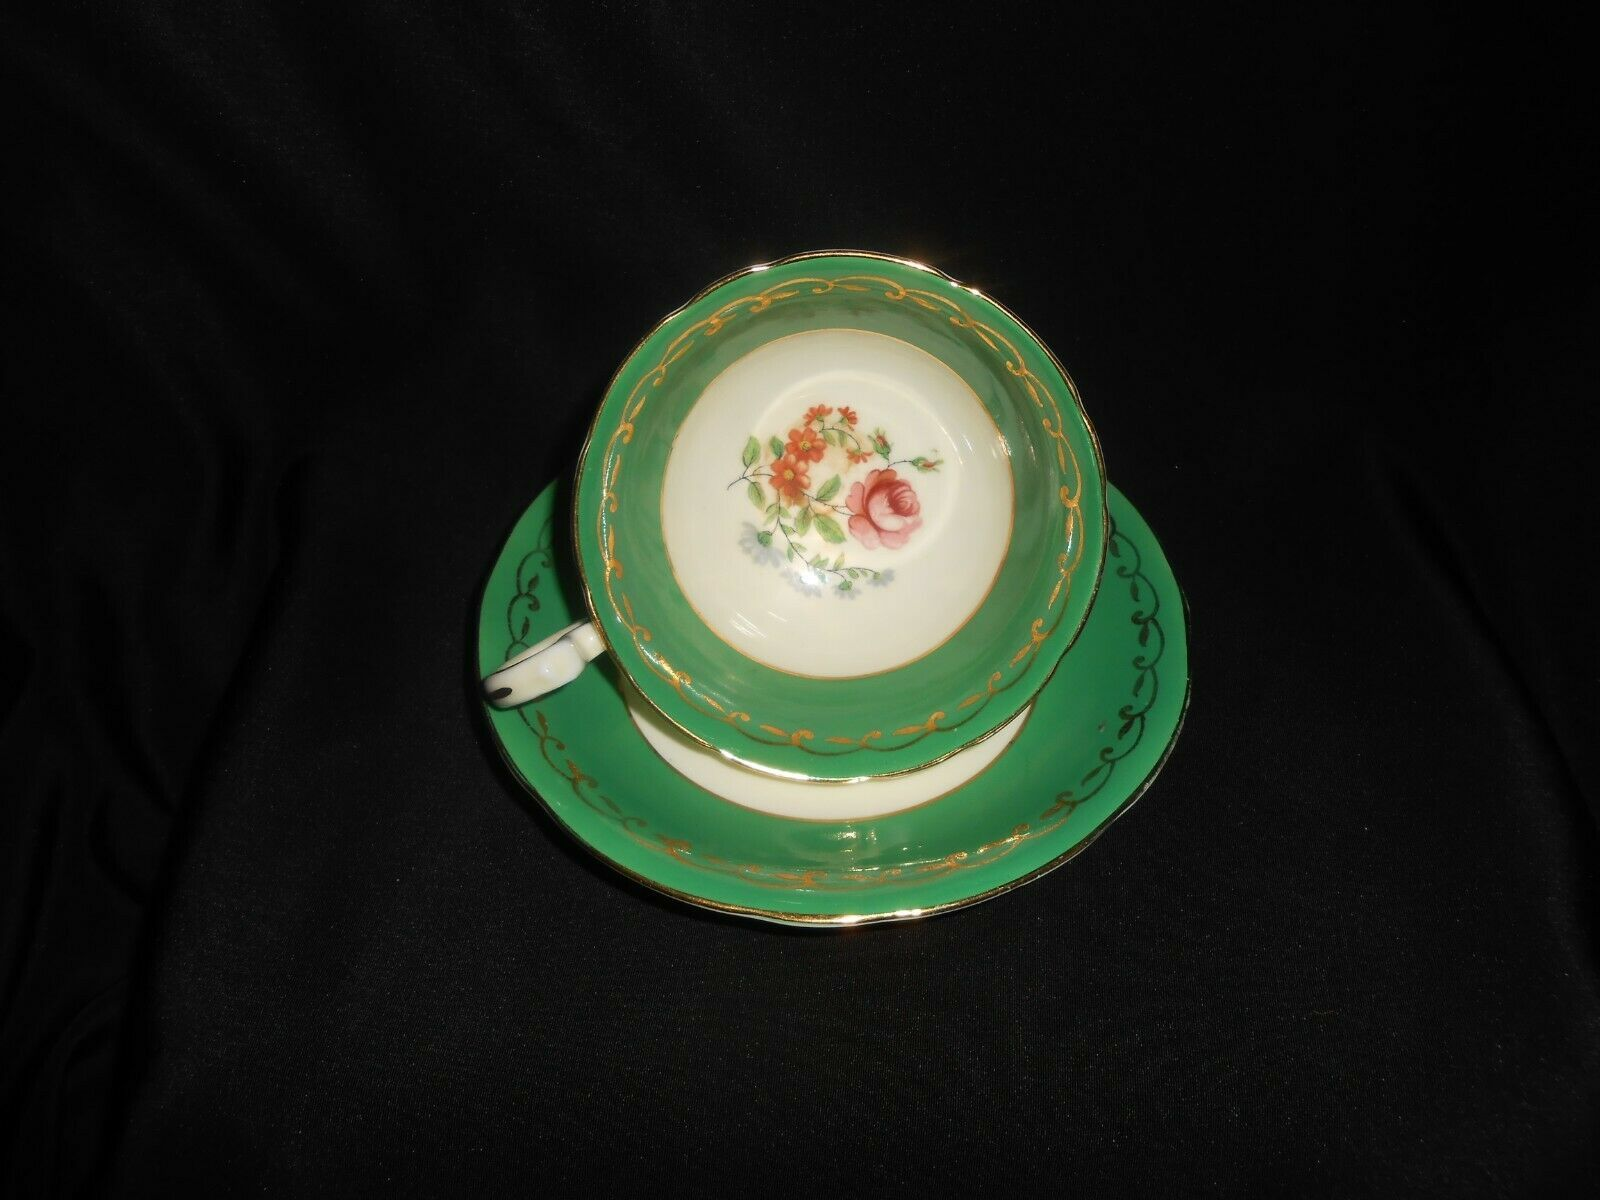 Aynsley Teacup and Saucer Green Gold Open Roses Vintage Floral Tea Cup & Saucer